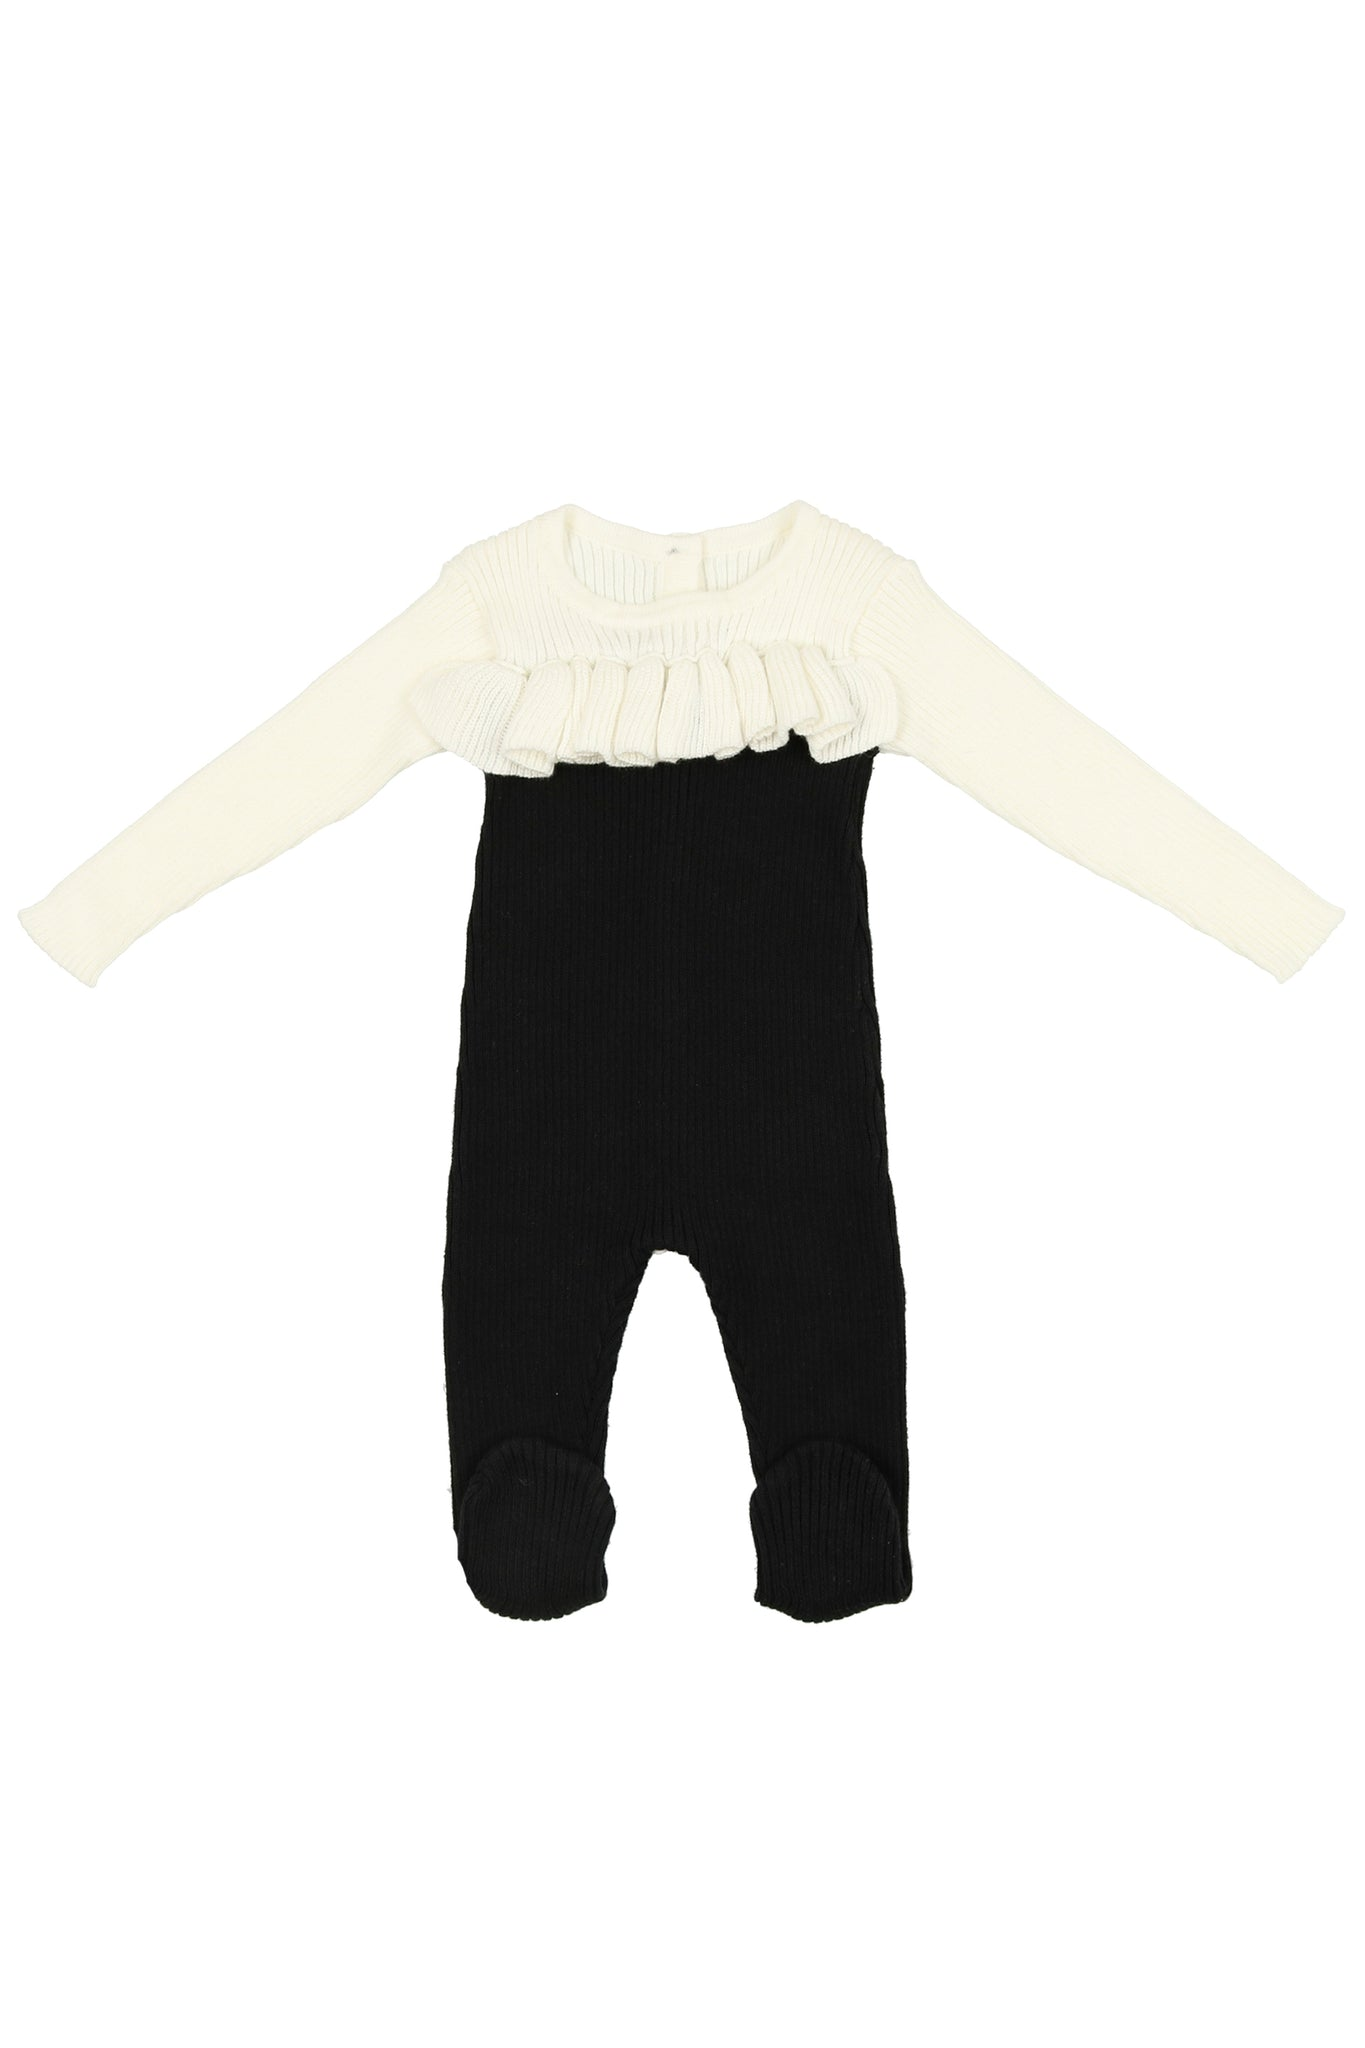 Noovel ruffle knit footie